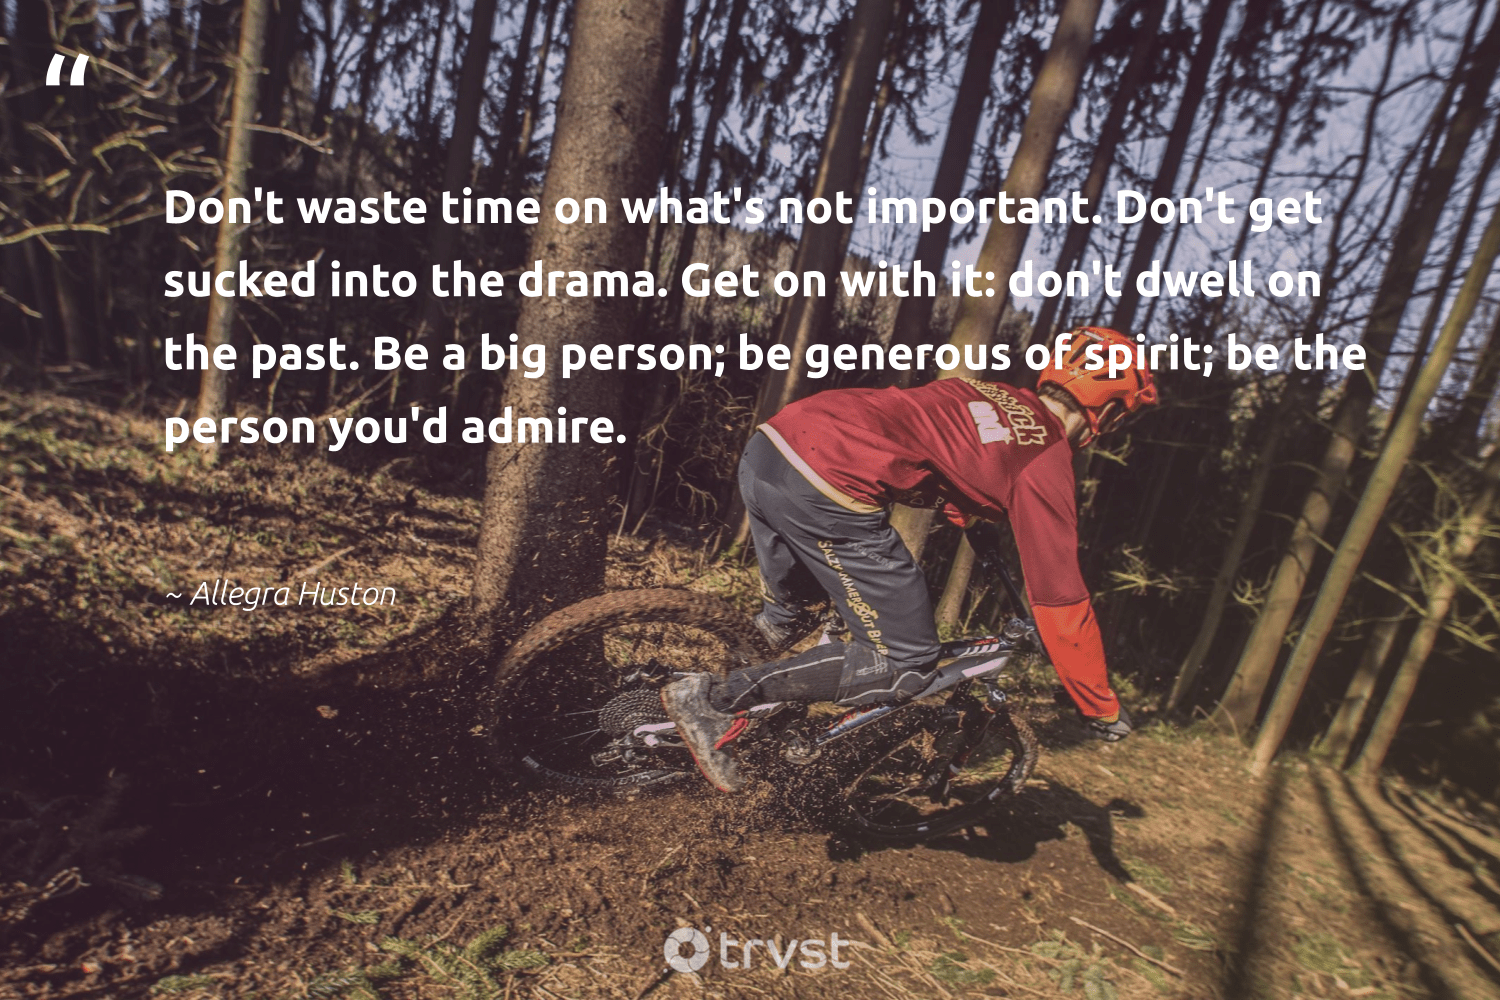 """Don't waste time on what's not important. Don't get sucked into the drama. Get on with it: don't dwell on the past. Be a big person; be generous of spirit; be the person you'd admire.""  - Allegra Huston #trvst #quotes #waste #begreat #thinkgreen #togetherwecan #dosomething #changemakers #dogood #nevergiveup #gogreen #health"